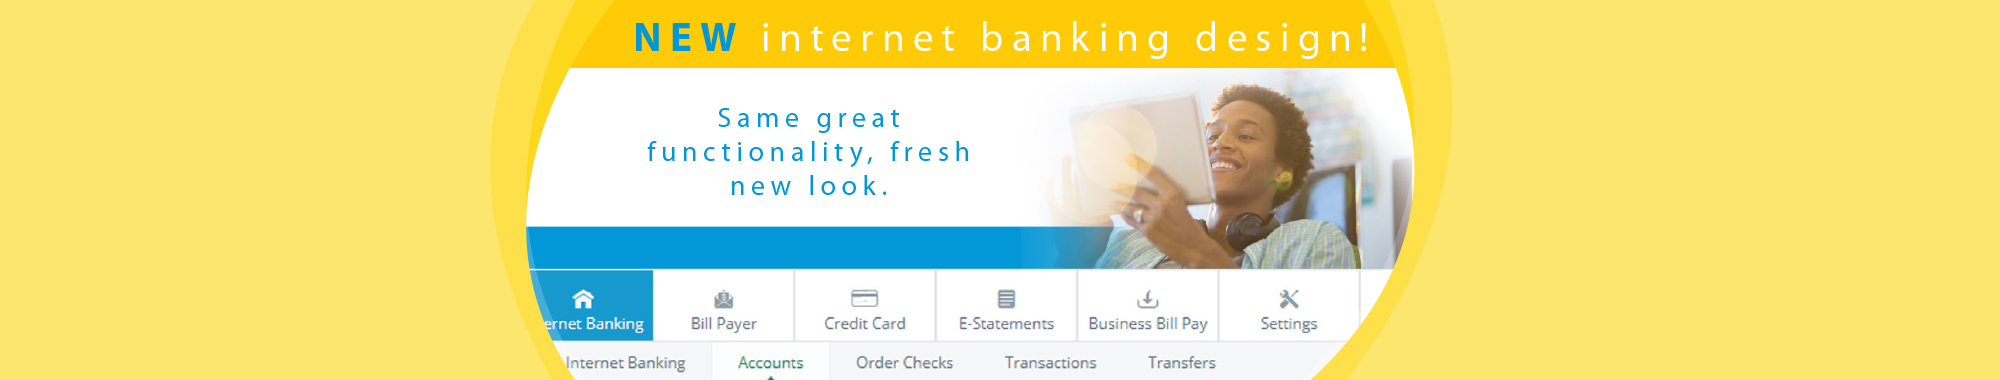 NEW internet banking design! Scroll for details.